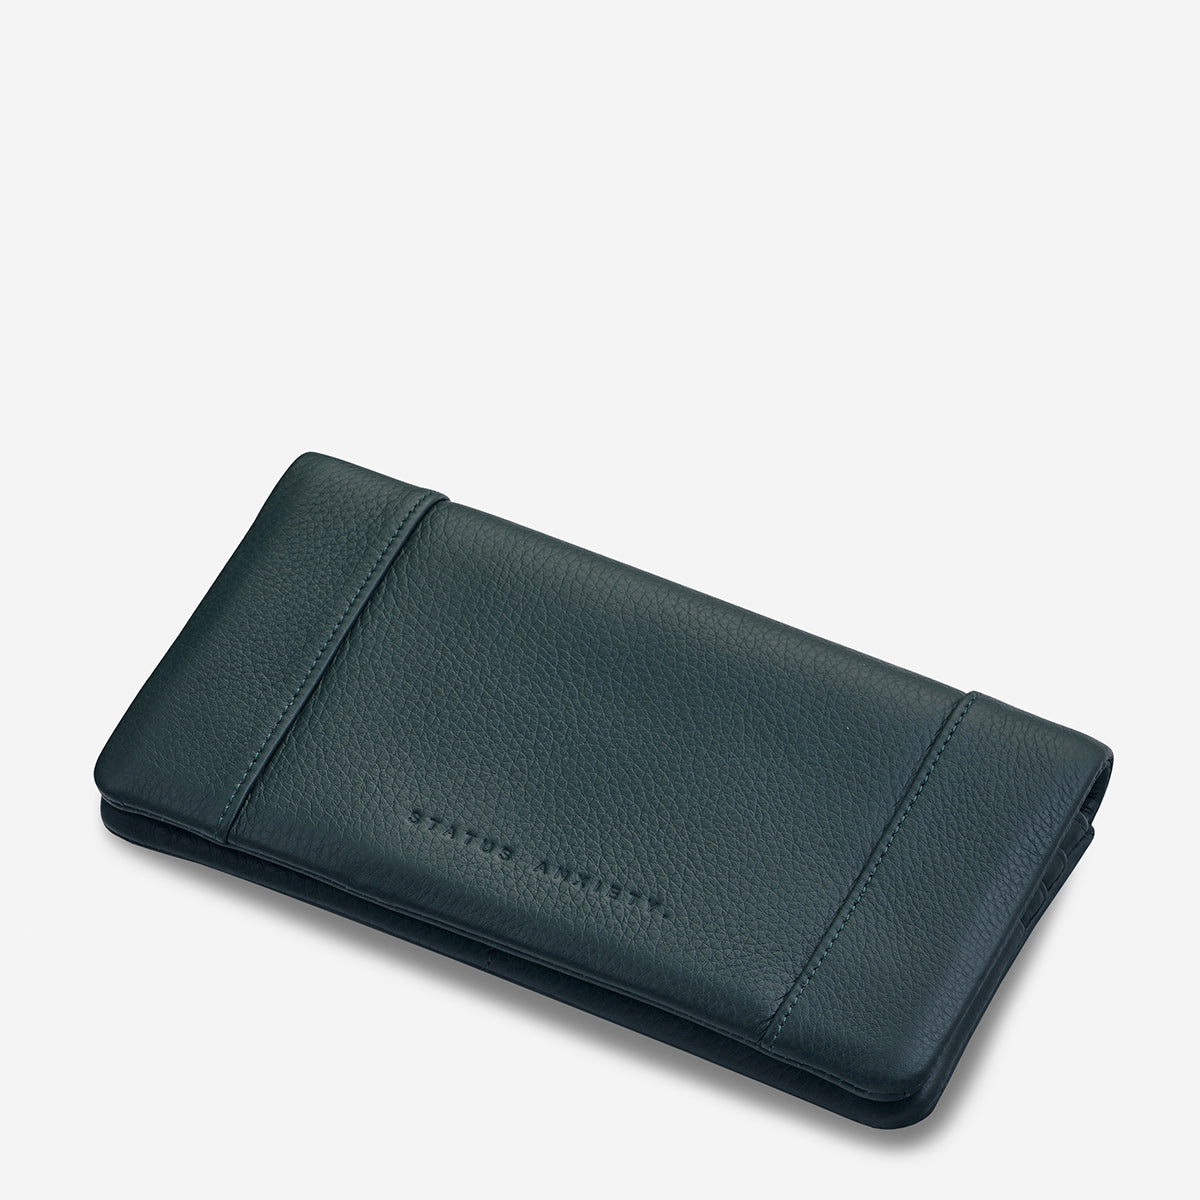 Status Anxiety Some Type Of Love Women's Leather Wallet Teal